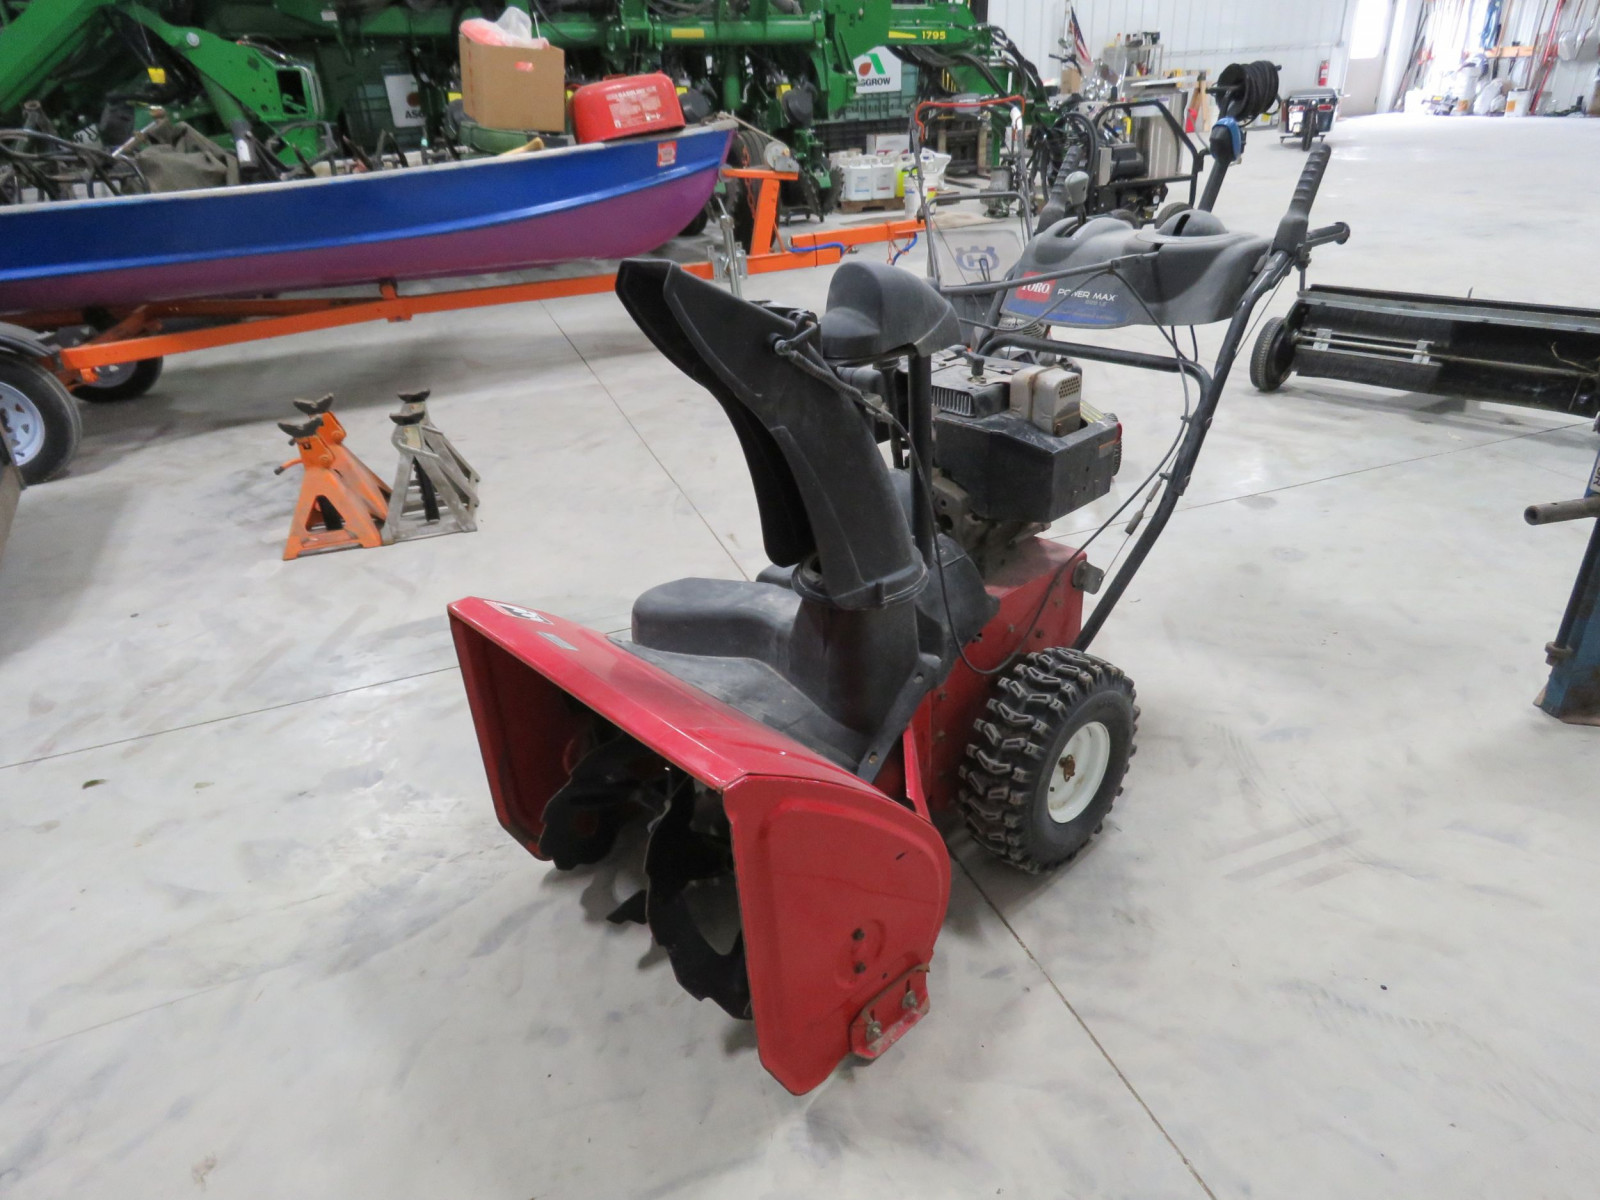 Toro Powermax 826LEv Snowblower - Image 2